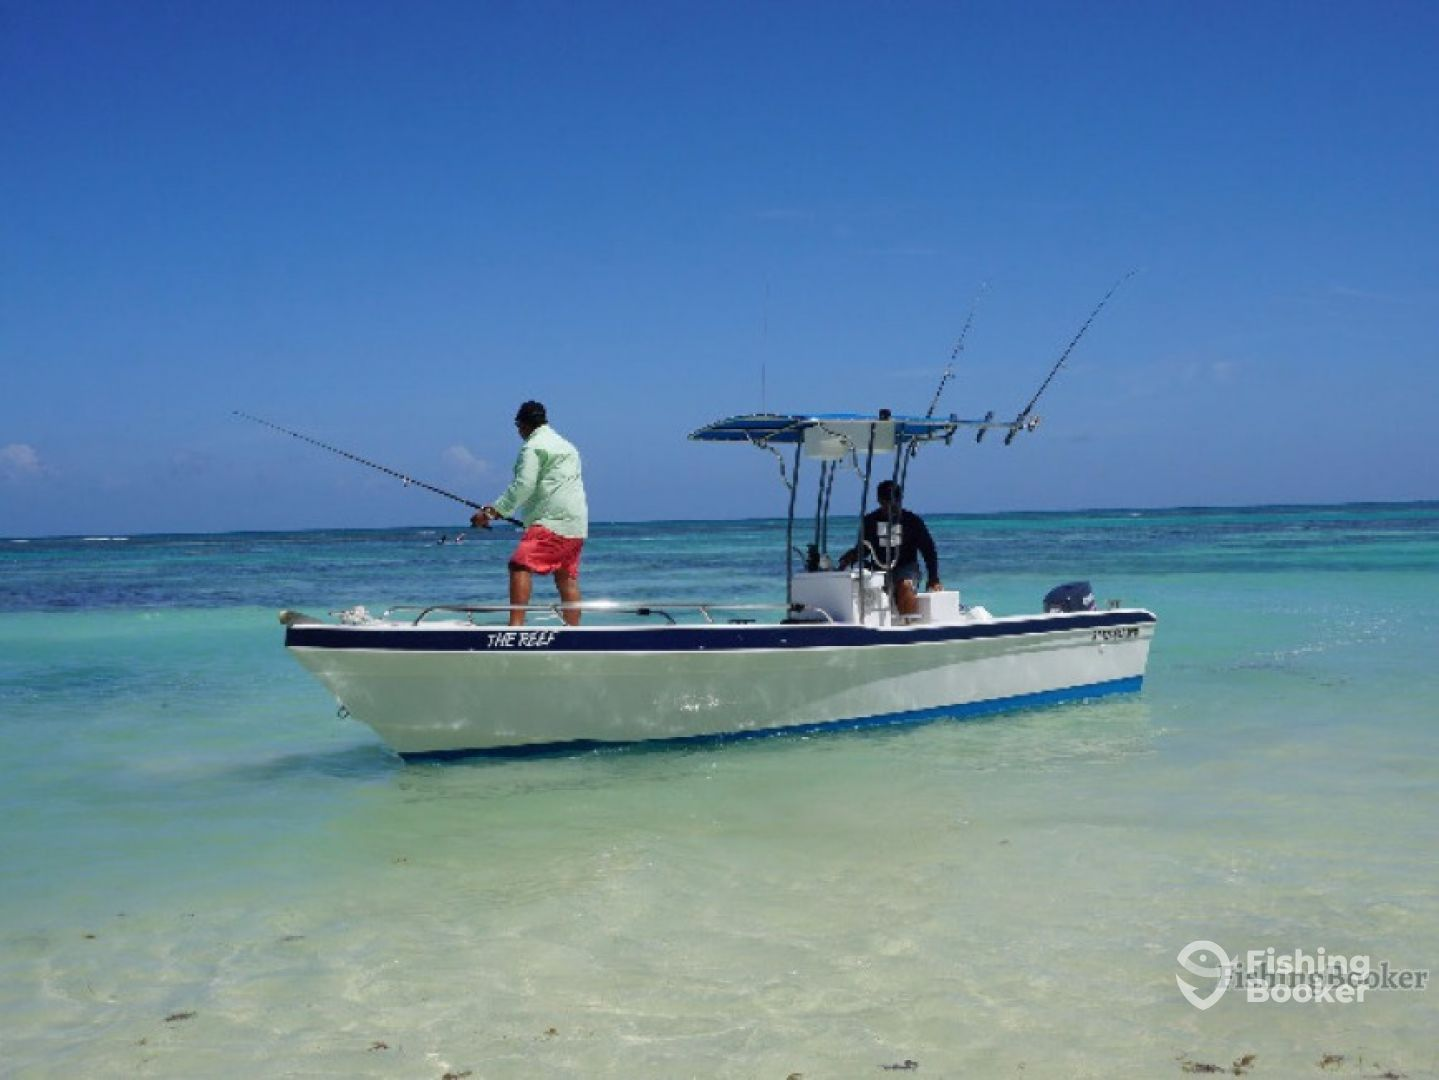 Atlántida Inshore and Fly Fishing